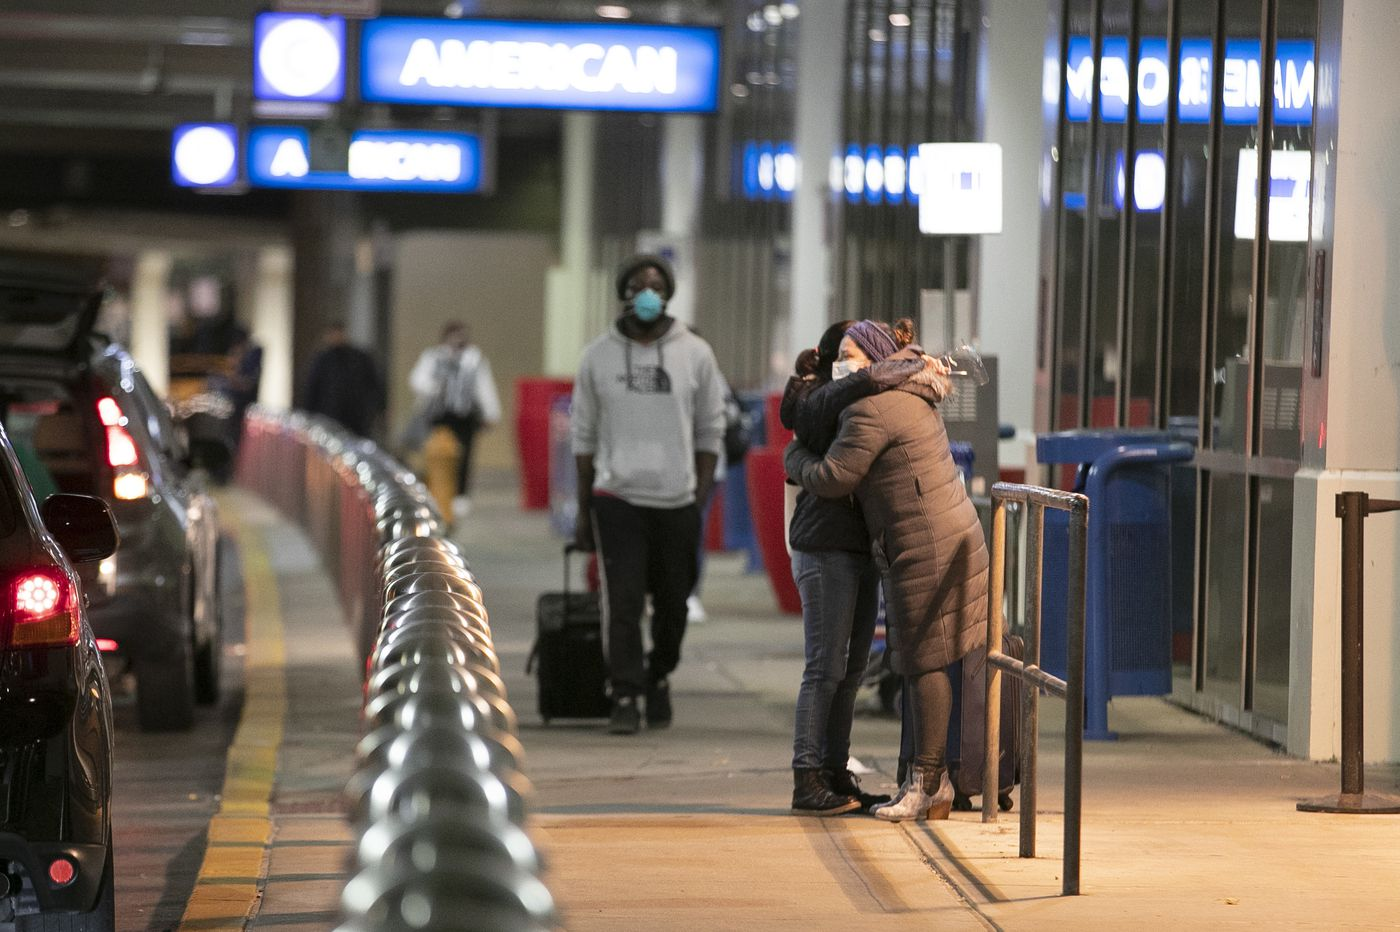 COVID-19 pandemic is not halting everyone's Thanksgiving travel plans